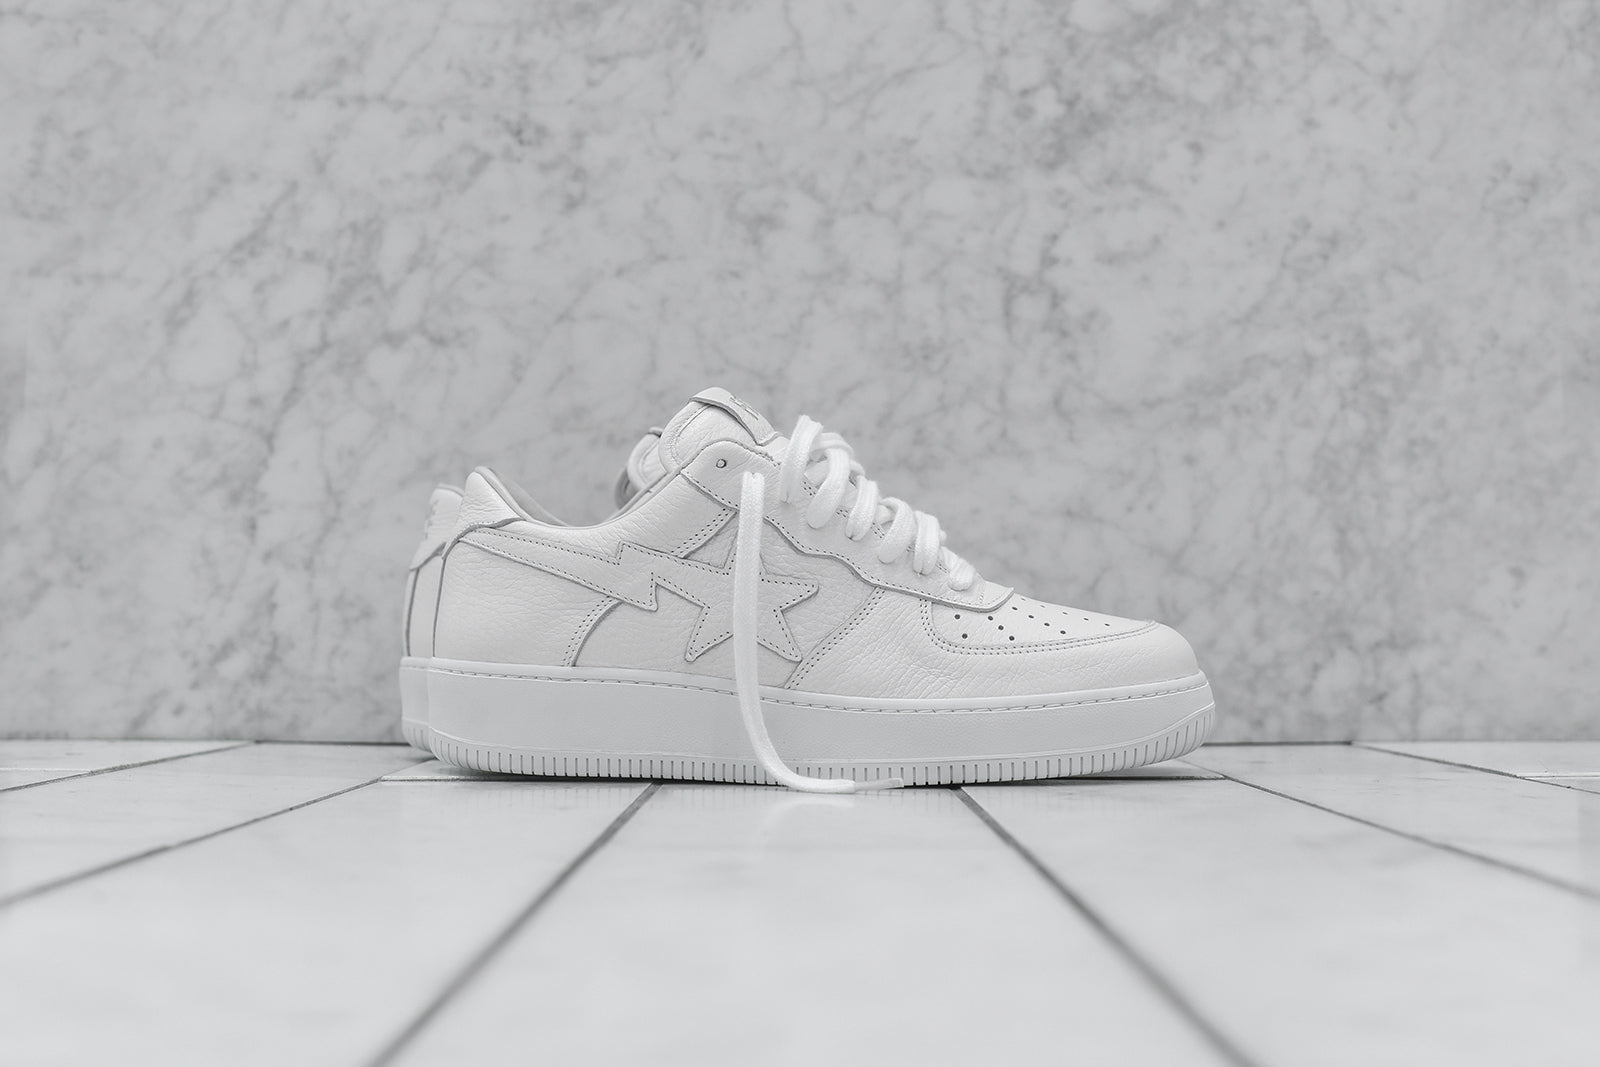 6a93ef0c40be A Closer Look at the Ronnie Fieg x A Bathing Ape Bapesta – Kith